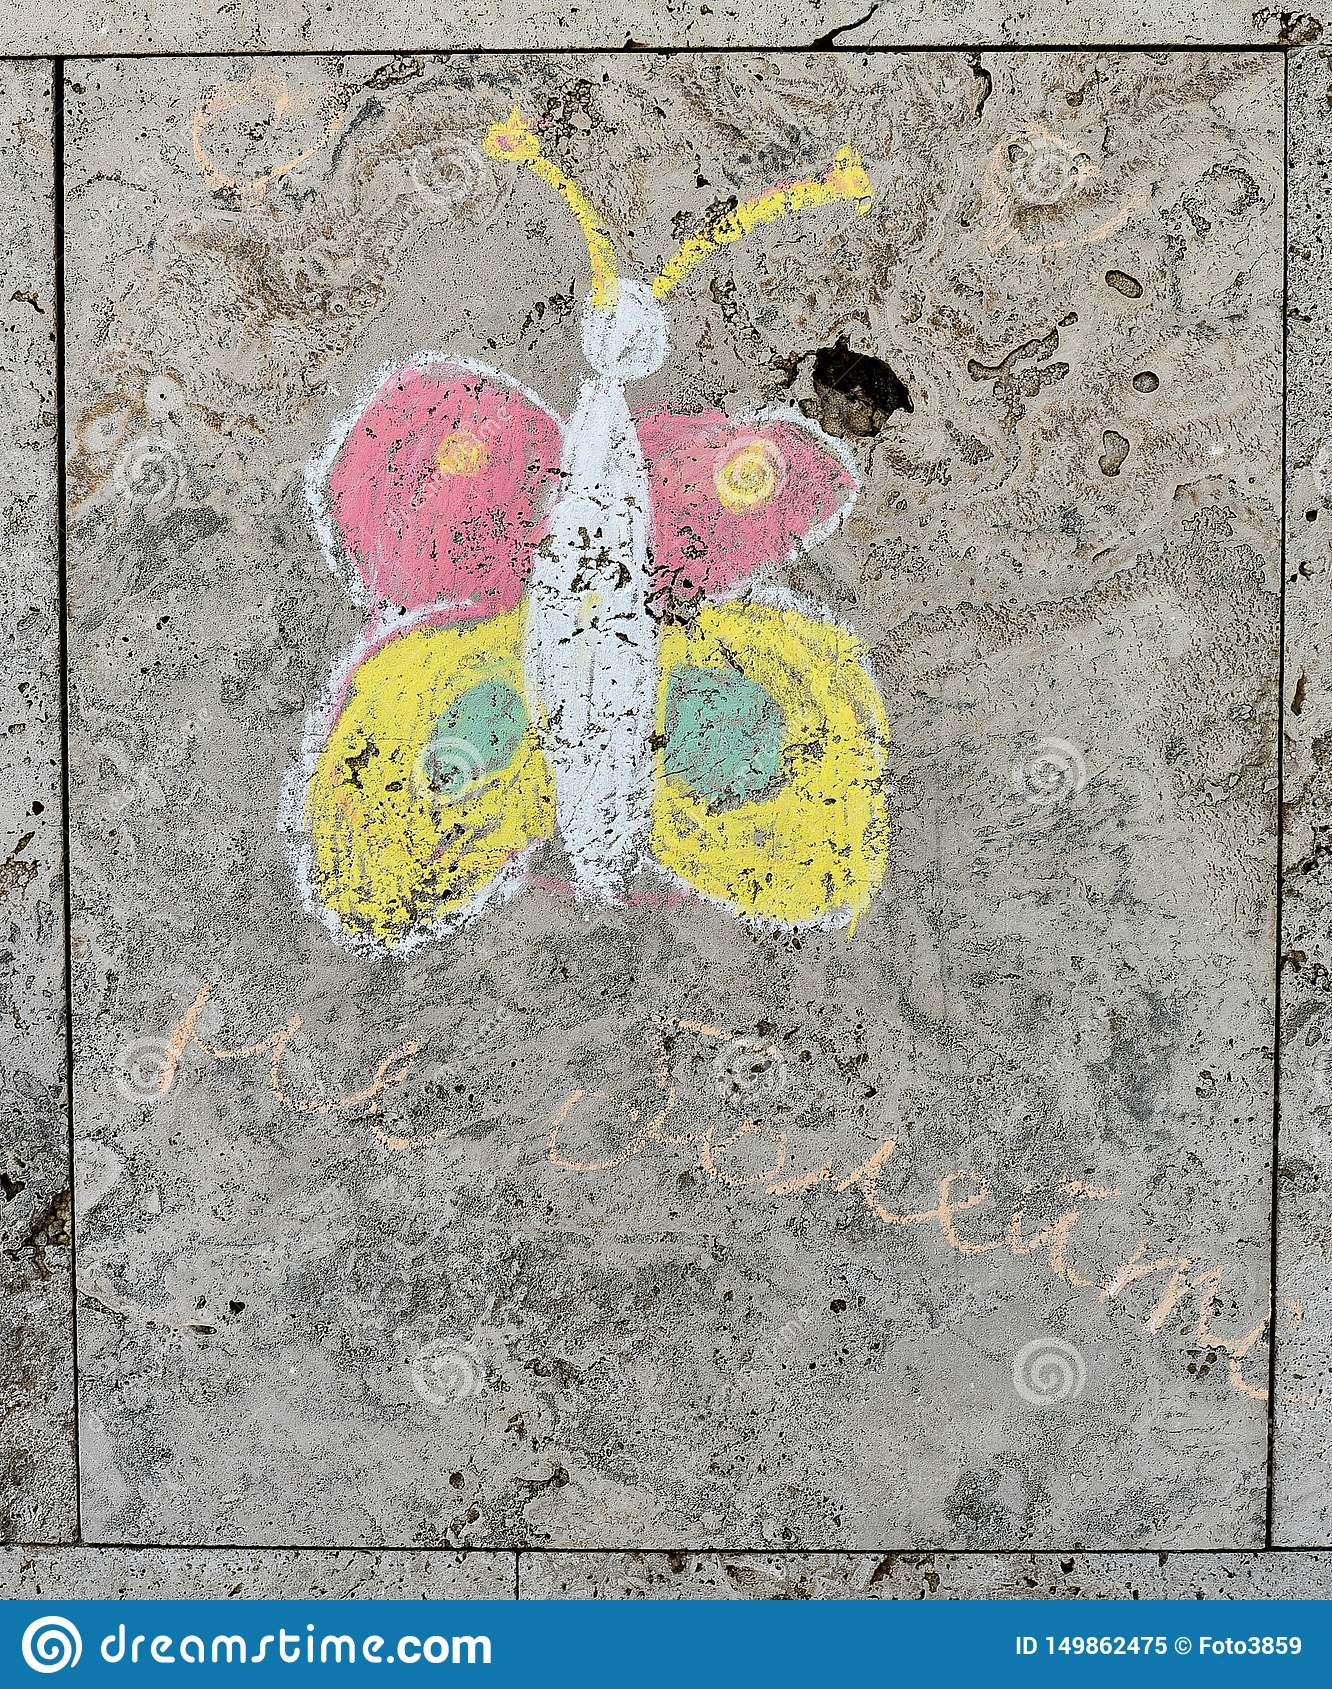 Children`s chalk drawing on a textured wall